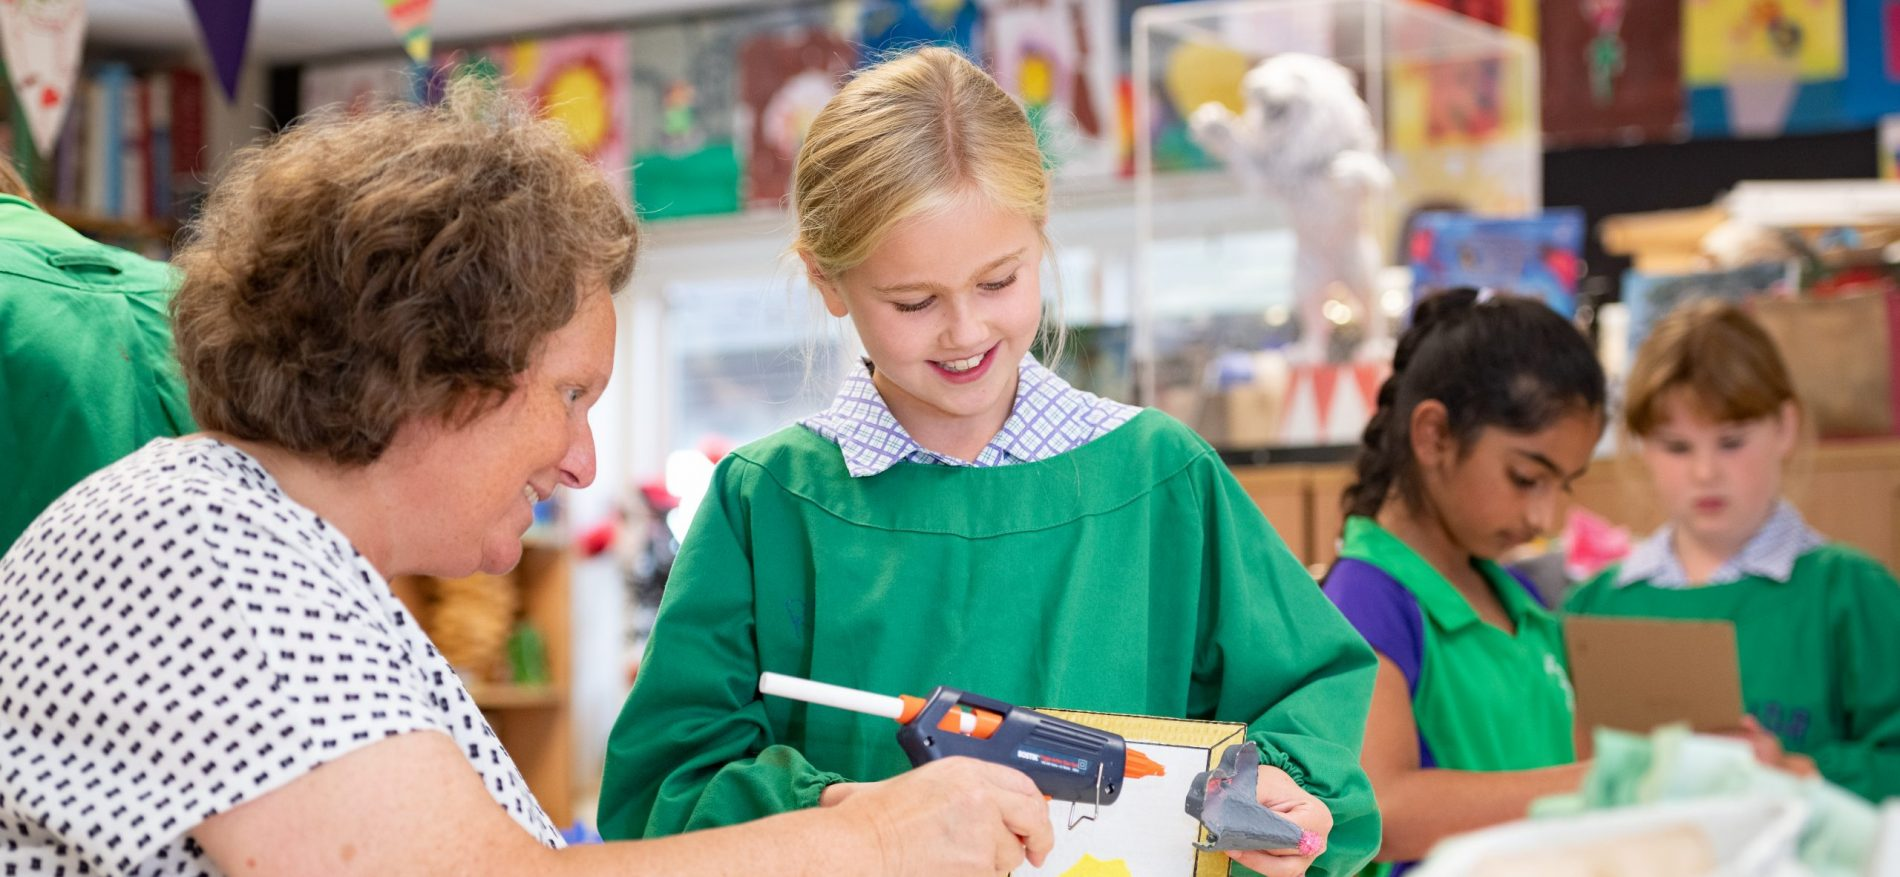 A teacher holds a glue gun against something a child is holding